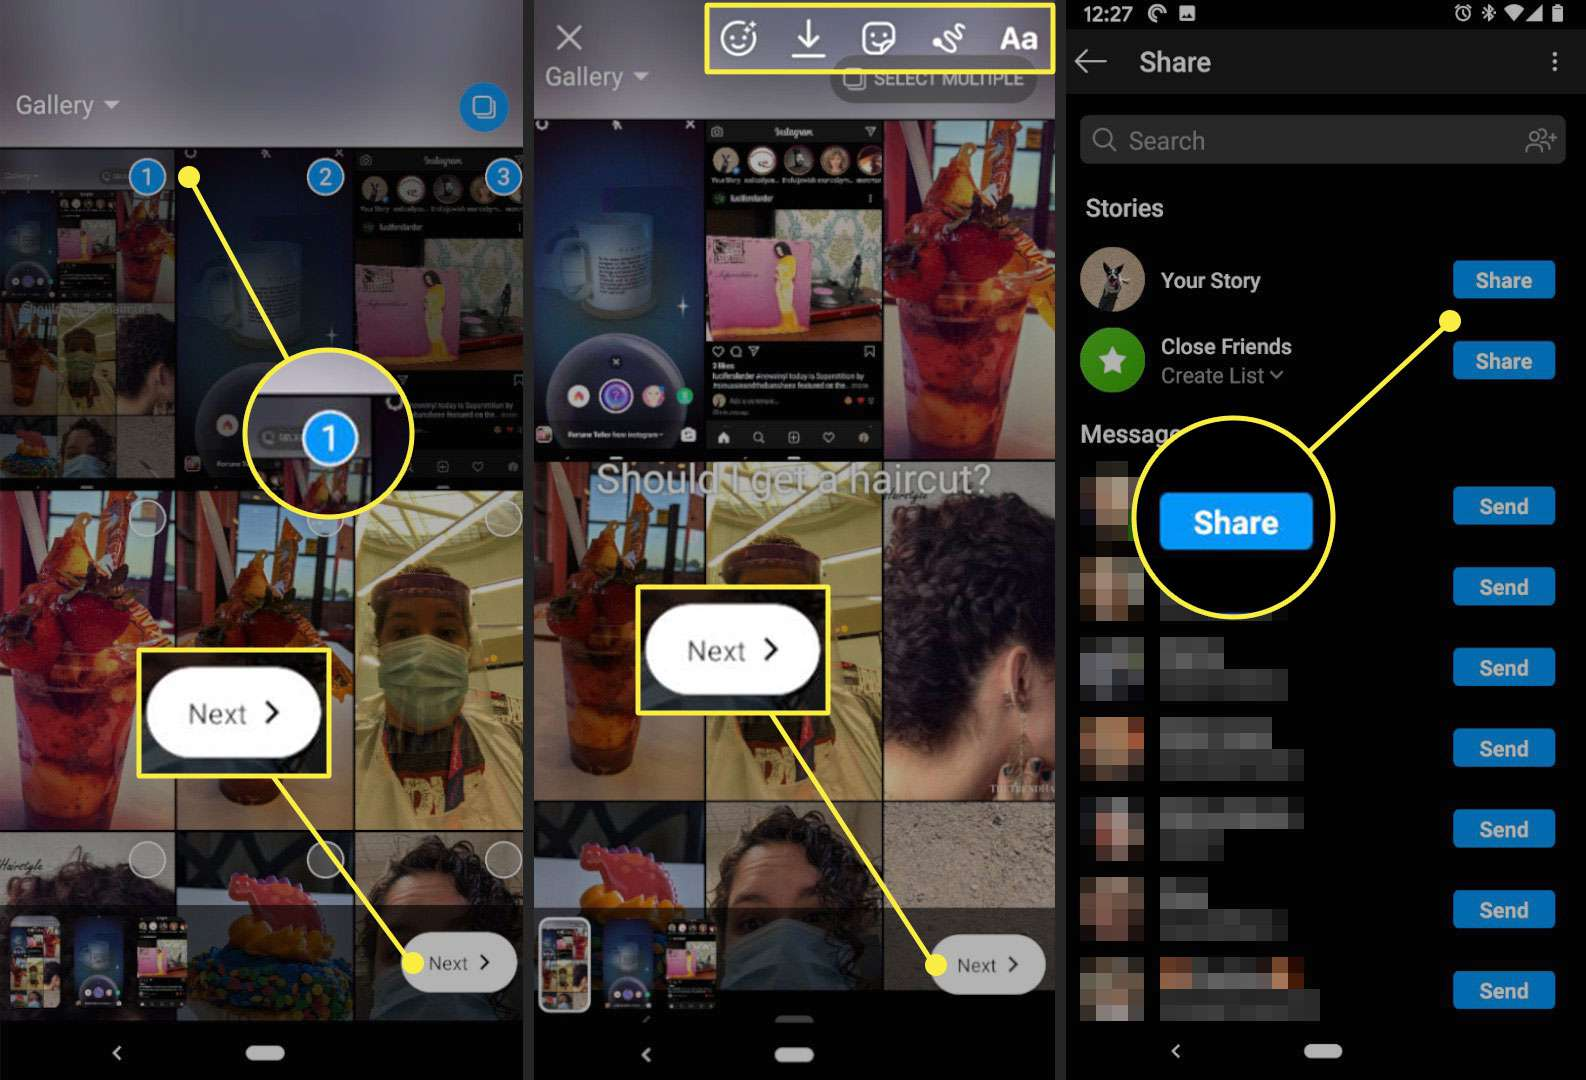 Adding and sharing multiple images to an Instagram story